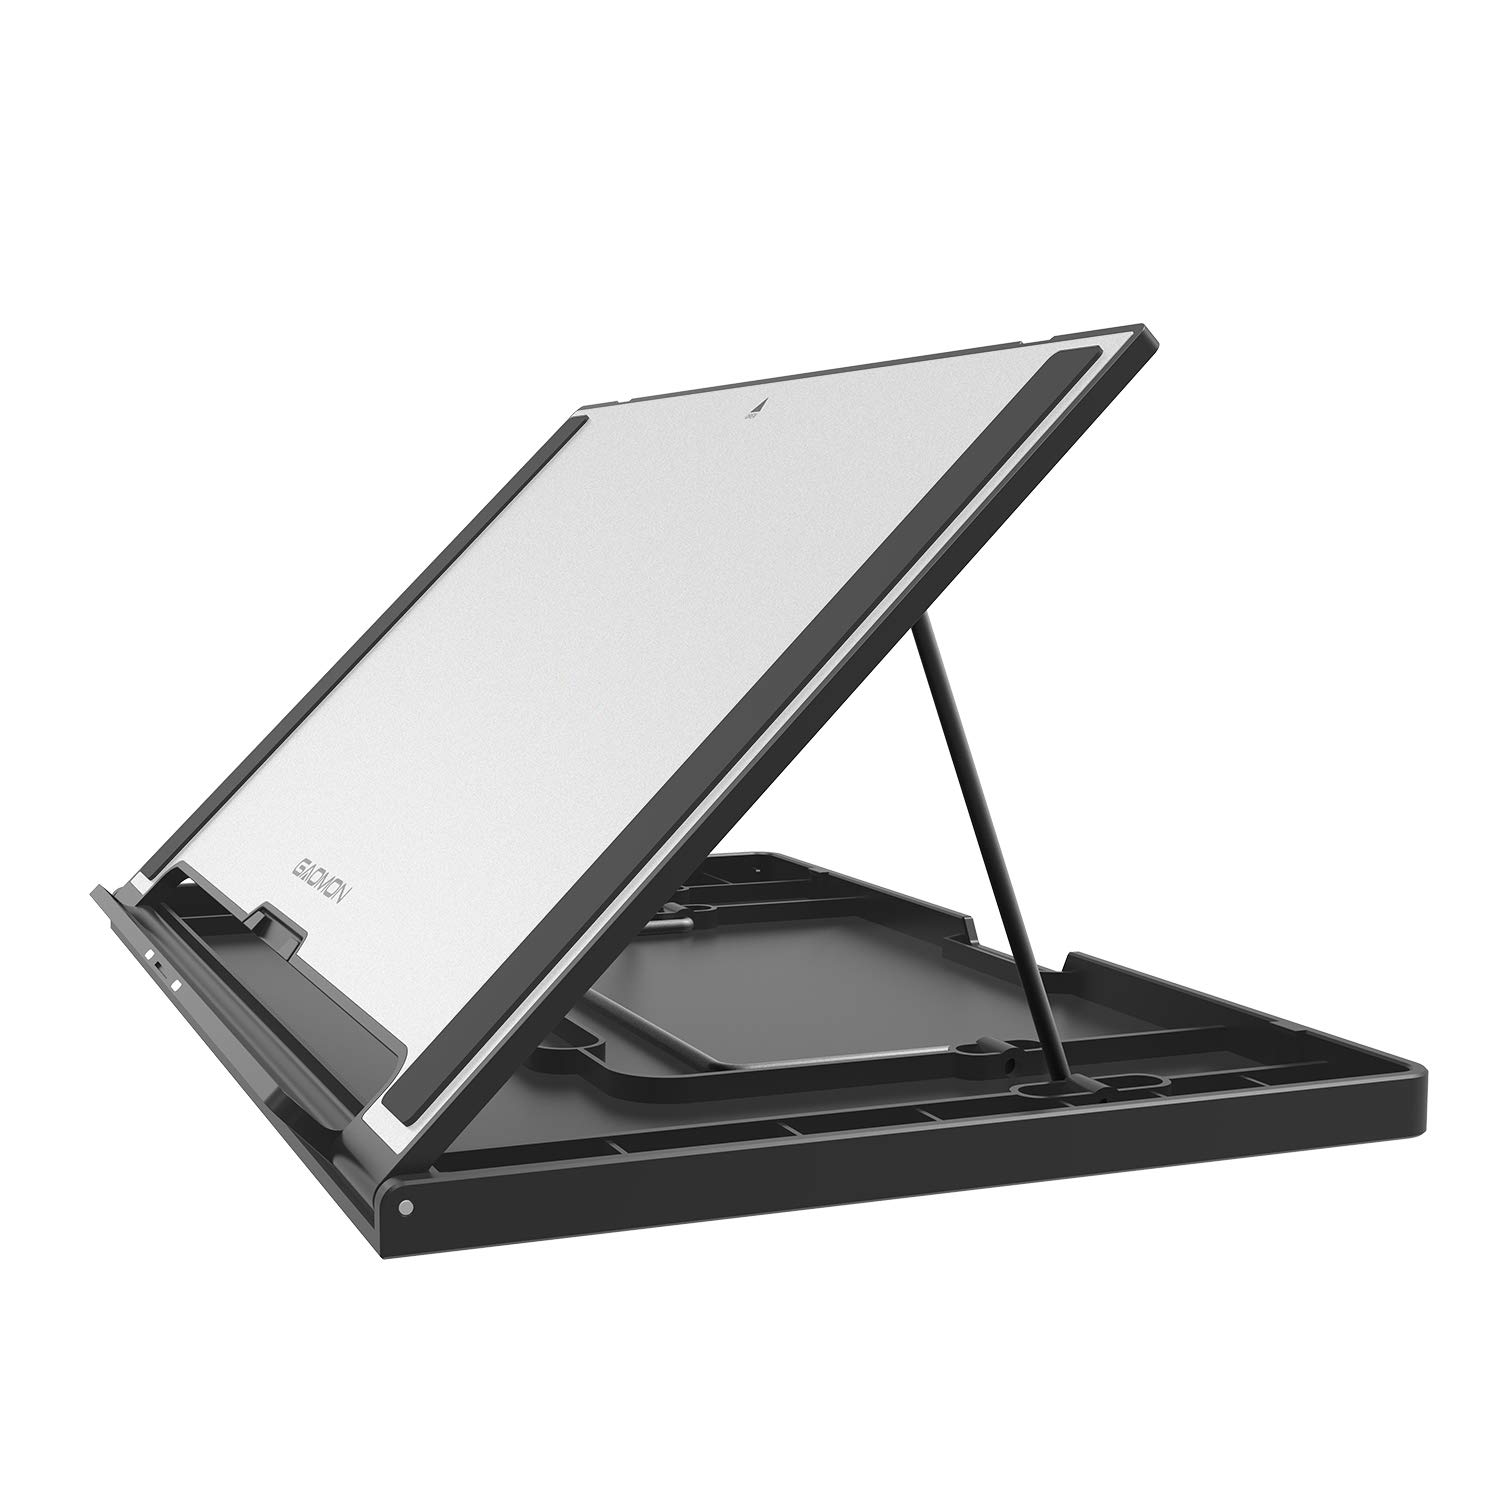 GAOMON Multifunctional Adjustable Stand Tablet Holder for PD156 PRO/PD1161 and Other Pads/Pen Displays/Tablets/Books Less Than 12mm Thickness